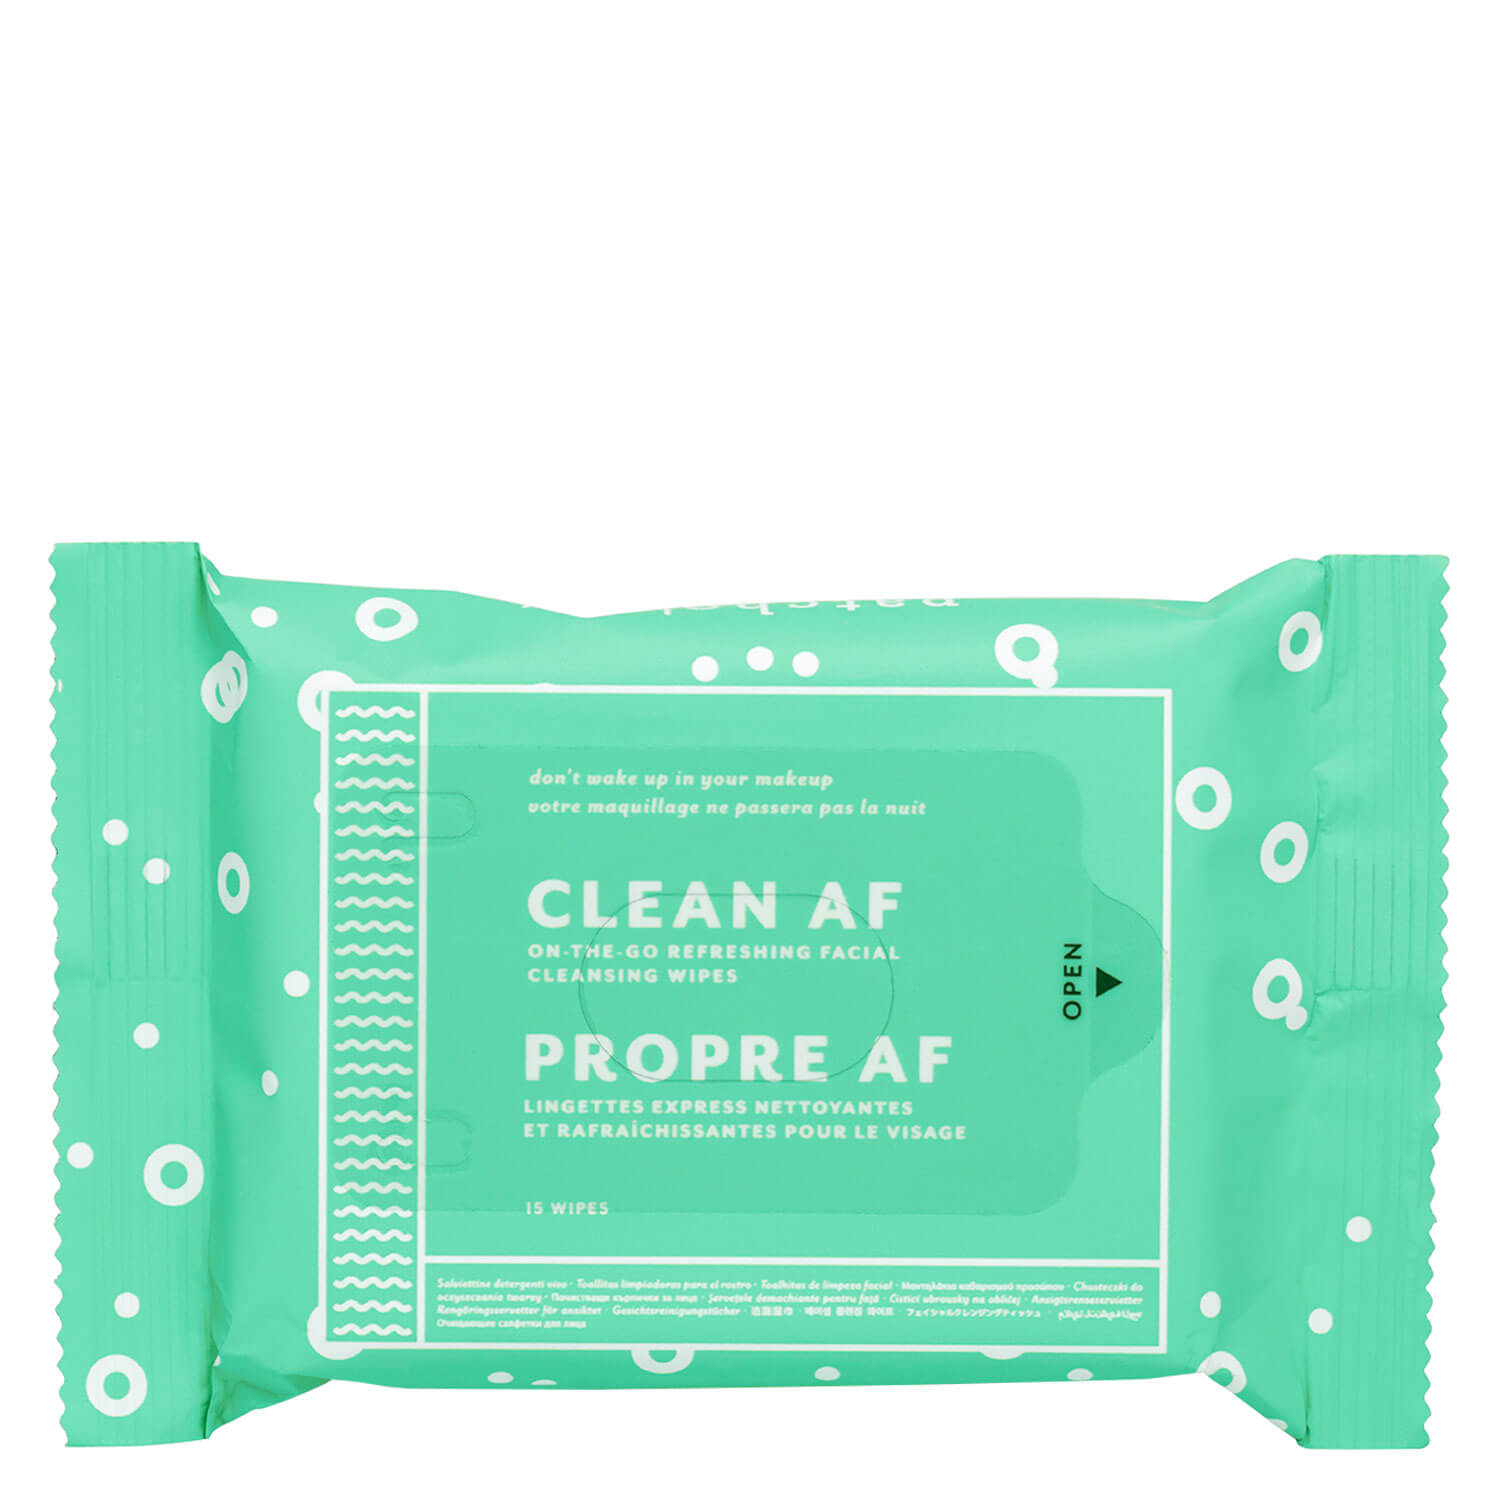 Daily Essentials - Clean AF Facial Cleansing Wipes - 1x15